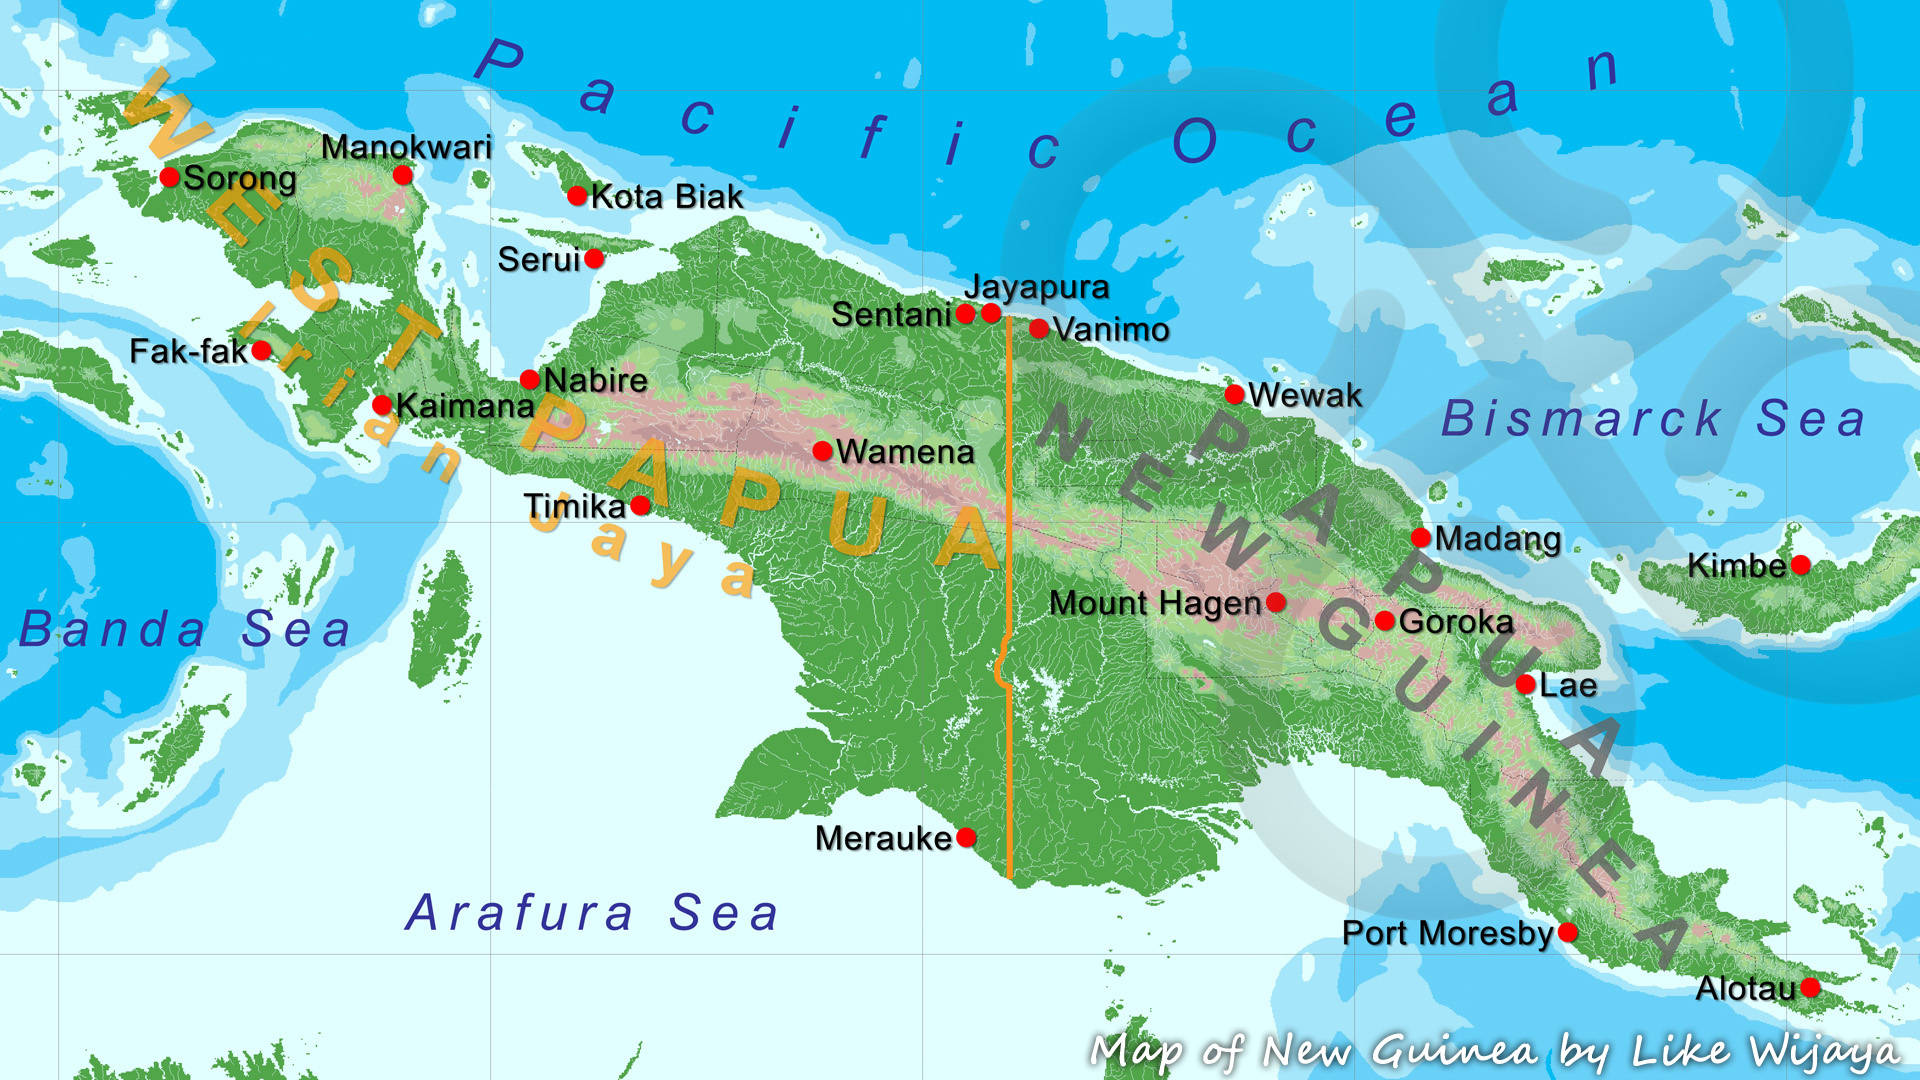 Map of New Guinea showing the nearly perpendicular border at 141° East, deviating only at the so-called 'Fly River Bulge', with West Papua or Indonesian New Guinea to the west and Papua New Guinea to the east. Copyright © Like Wijaya